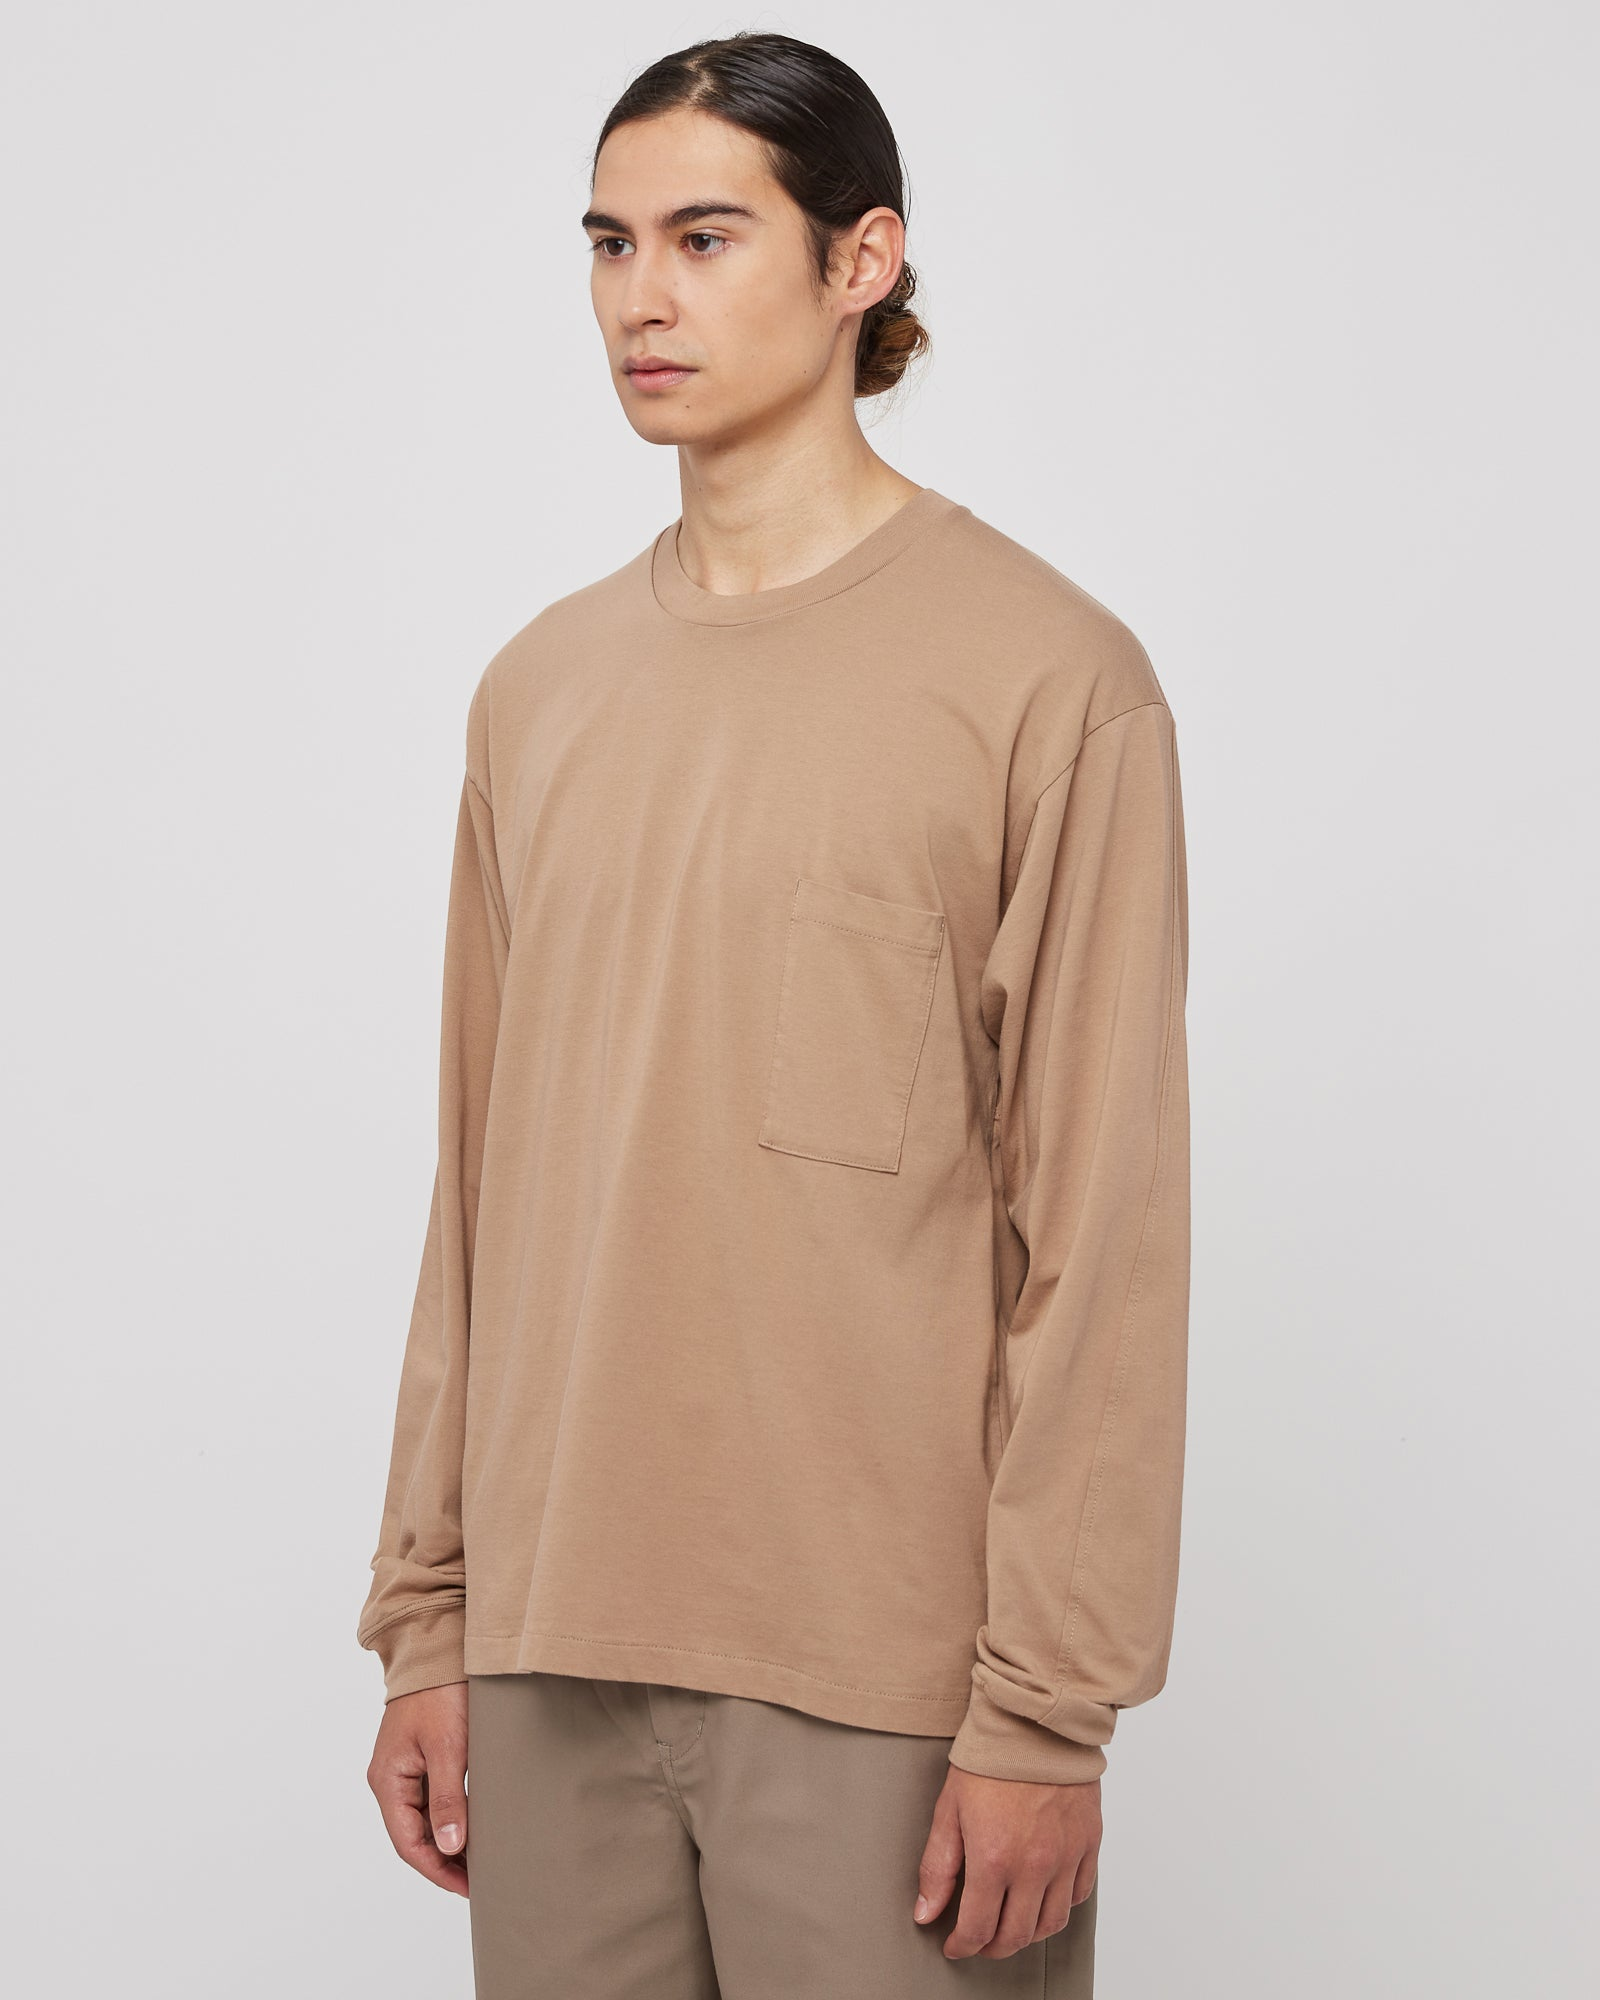 Slim Pocket Long Sleeve in Beige